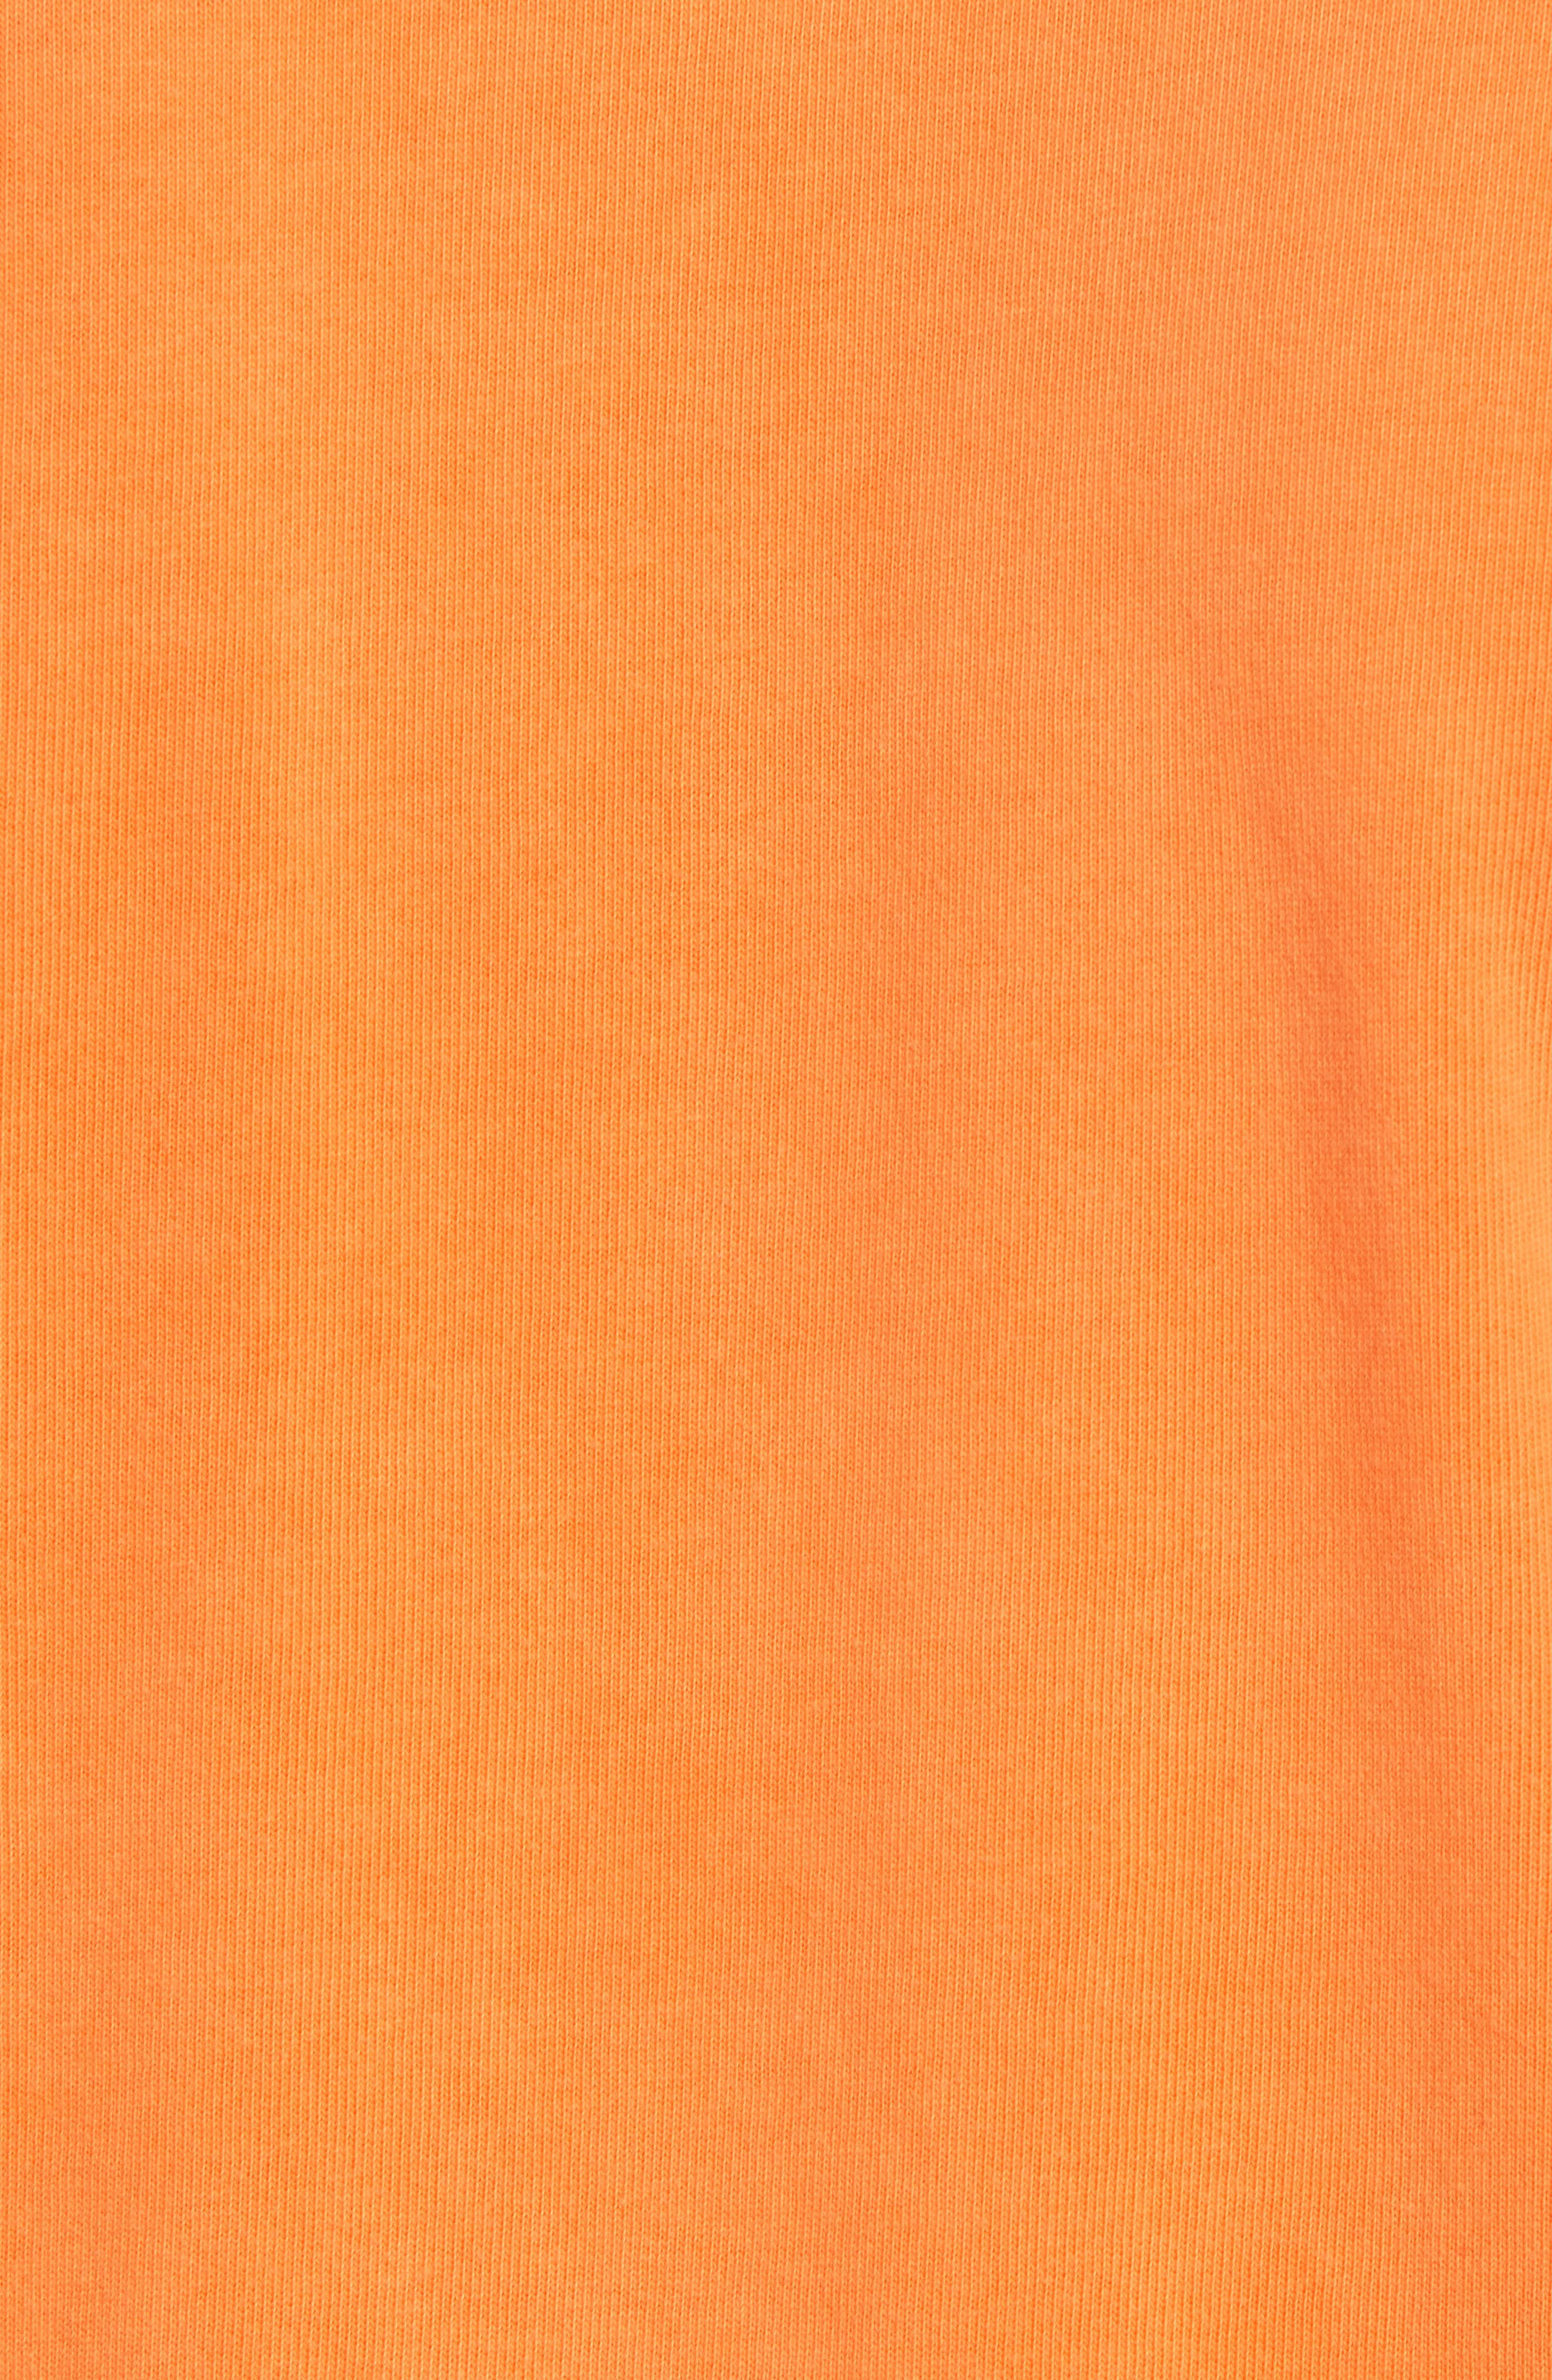 Anderson Sweatshirt,                             Alternate thumbnail 5, color,                             Orange